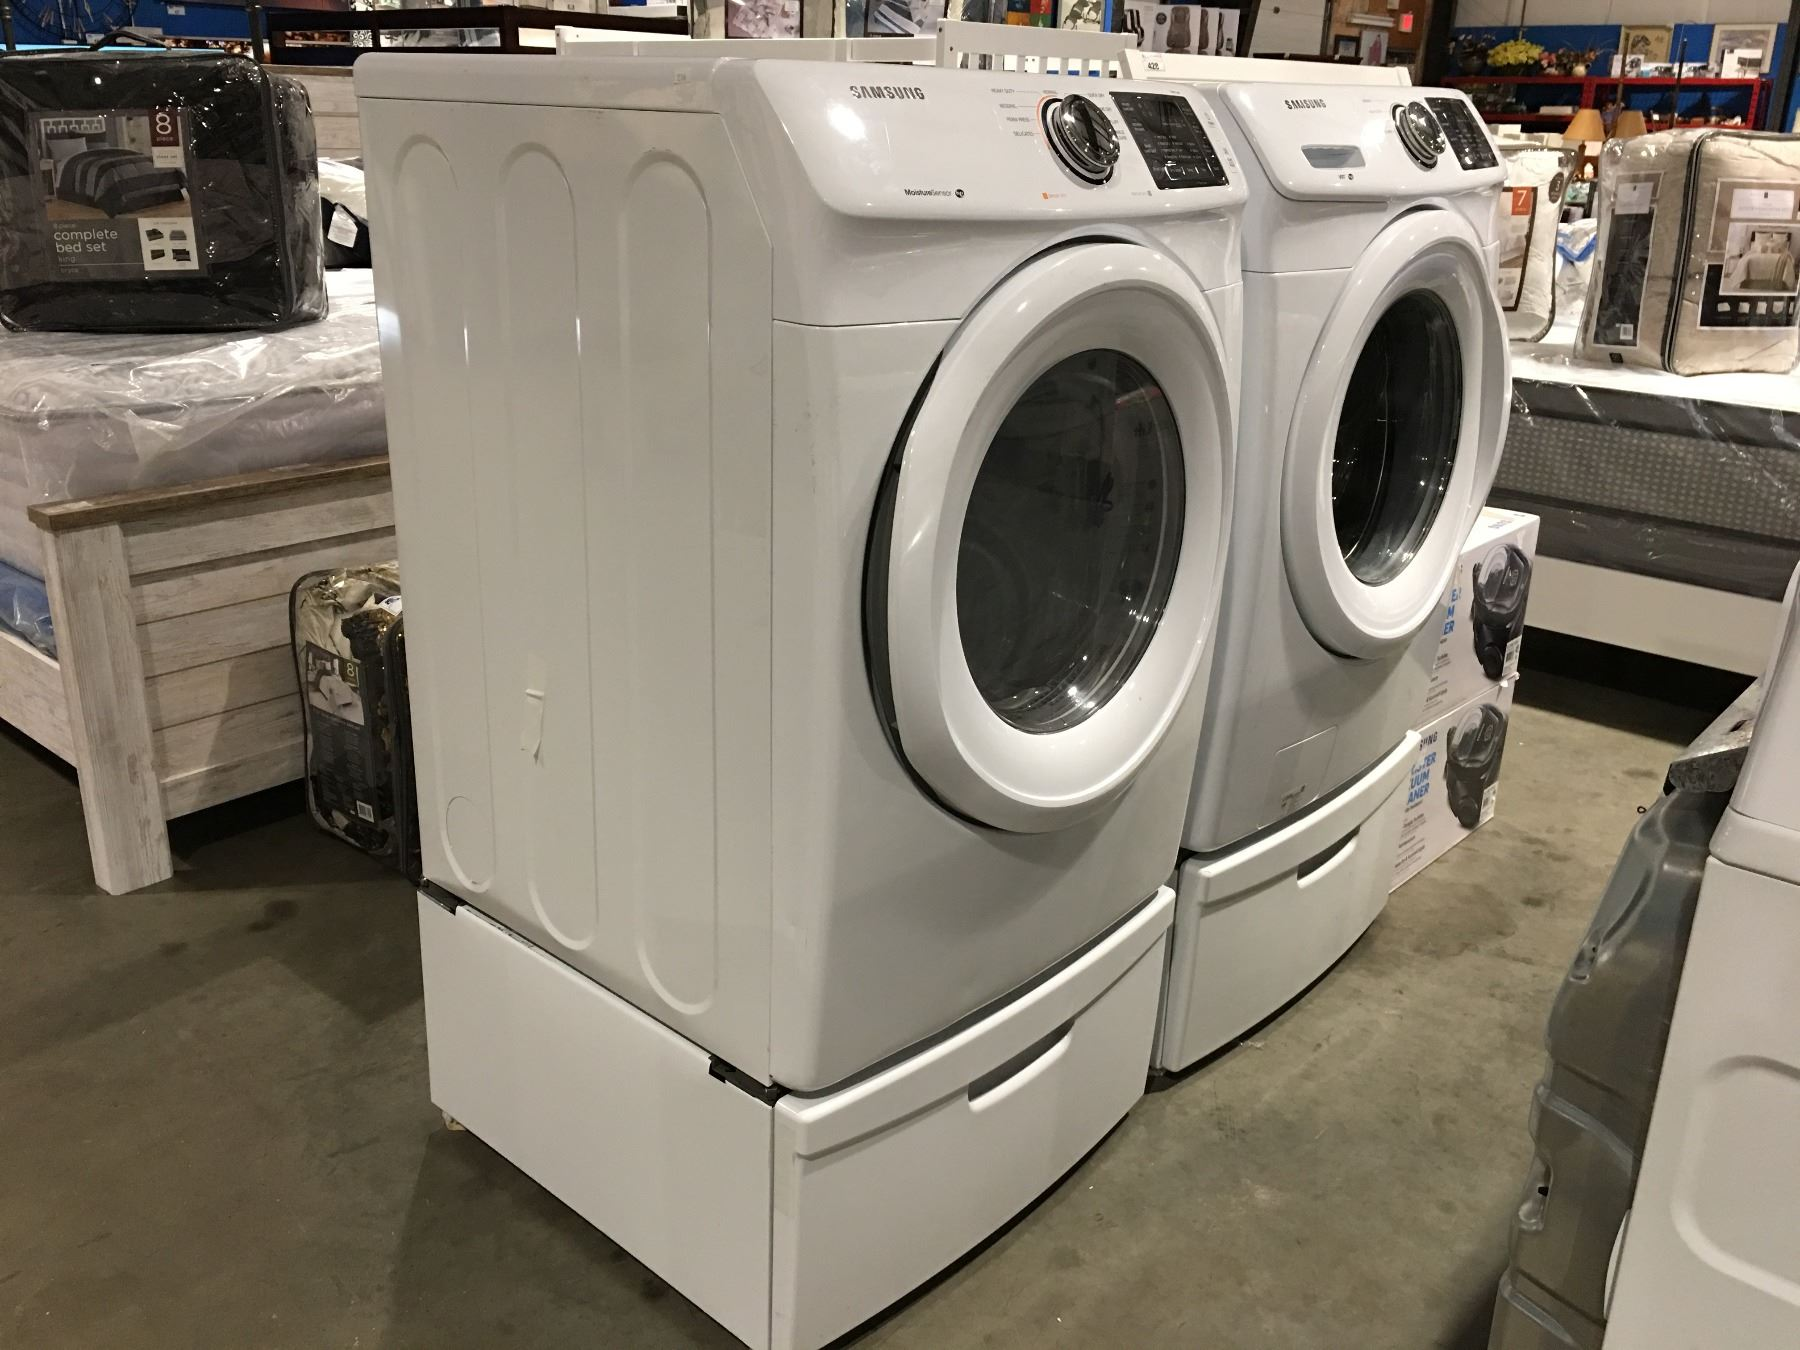 steam load pair sold samsung with bin pedestals self matching white separately and ajmadison cgi front shown washer dryer pedestal inch